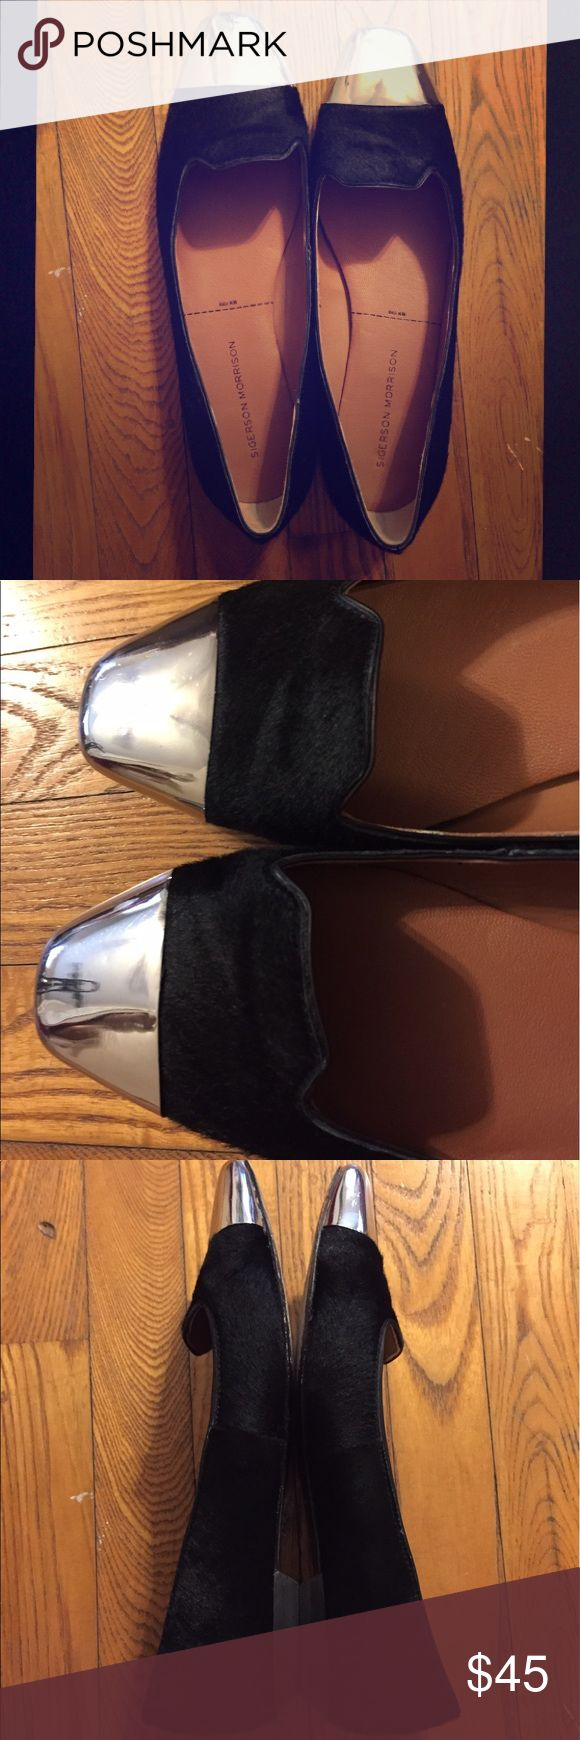 Sigerson Morrison Black Loafers with Silver toes Made of pony hair with mirror silver toes, leather sole and insole. Runs big as a loafer, these are a size 9.5m. Has some wear on soles, shown in photos Sigerson Morrison Shoes Flats & Loafers